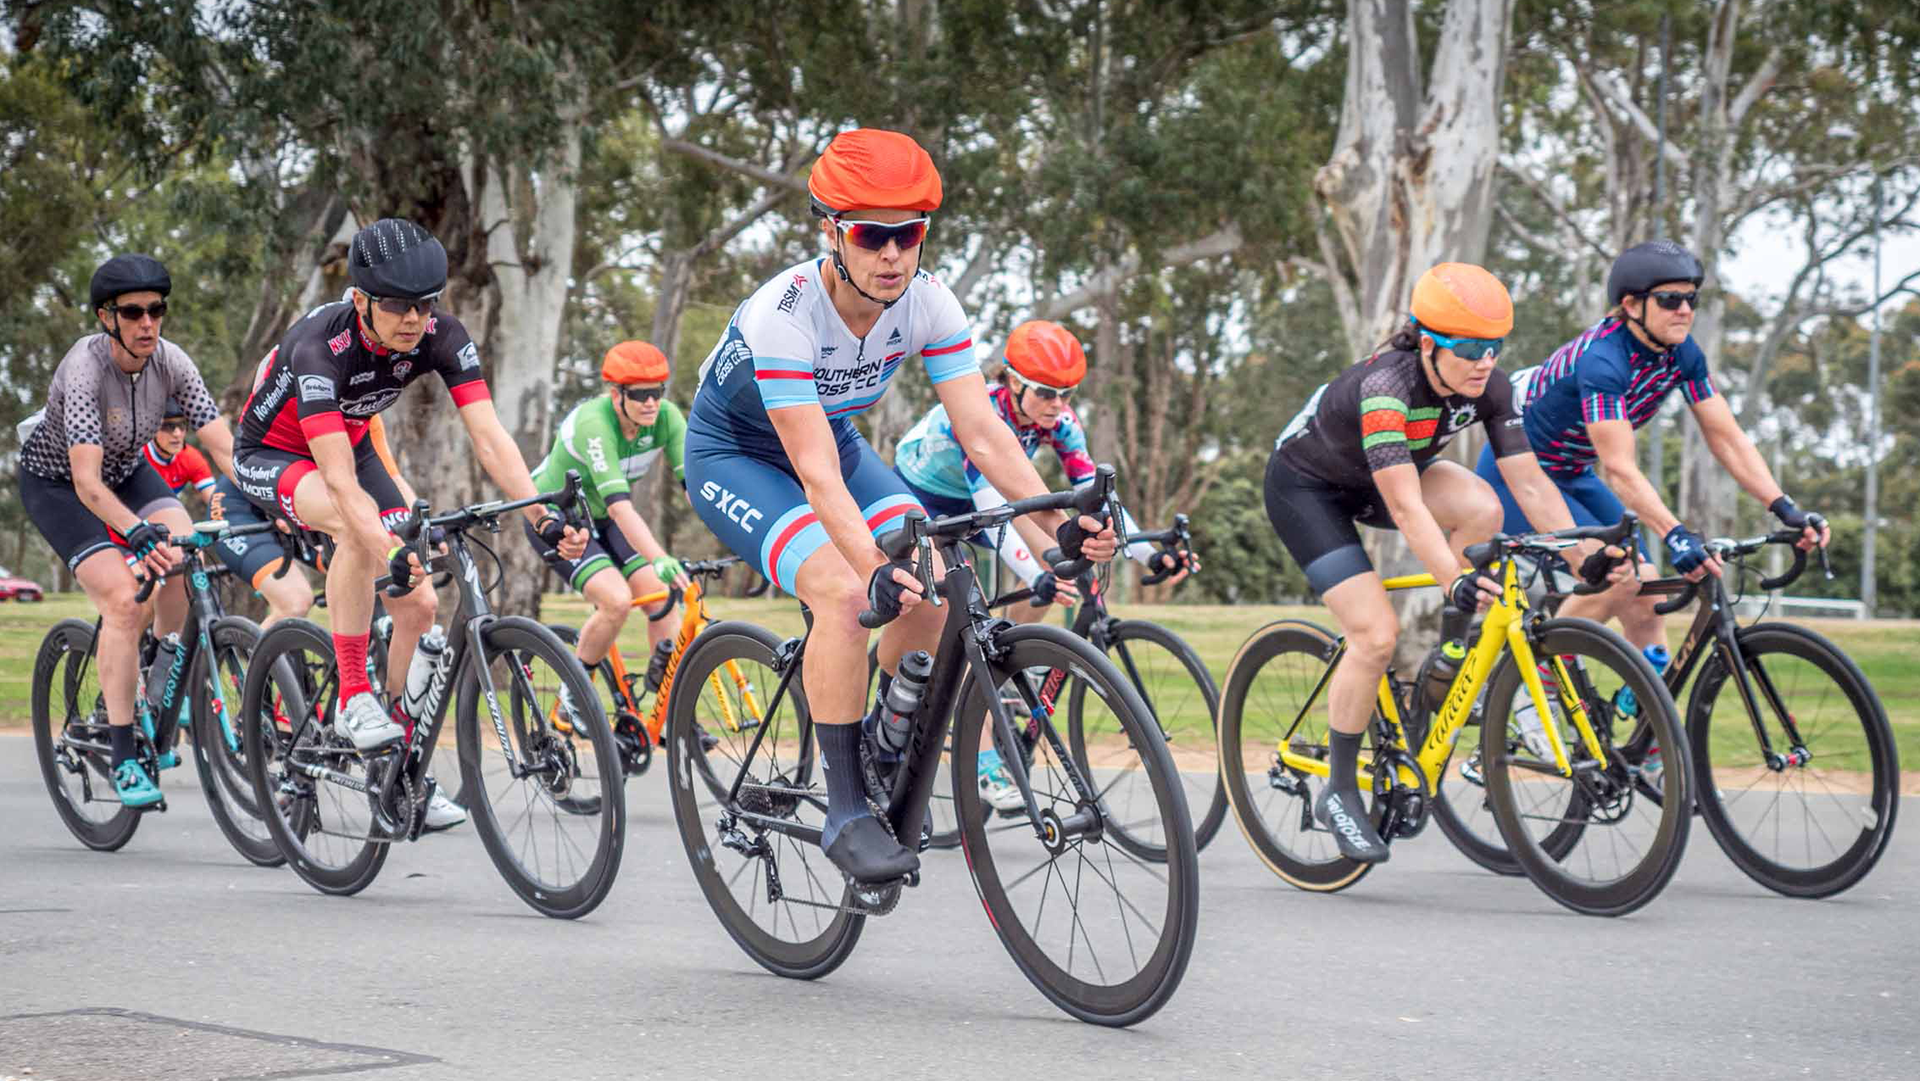 Cyclists representing their club at an AusCycling national race